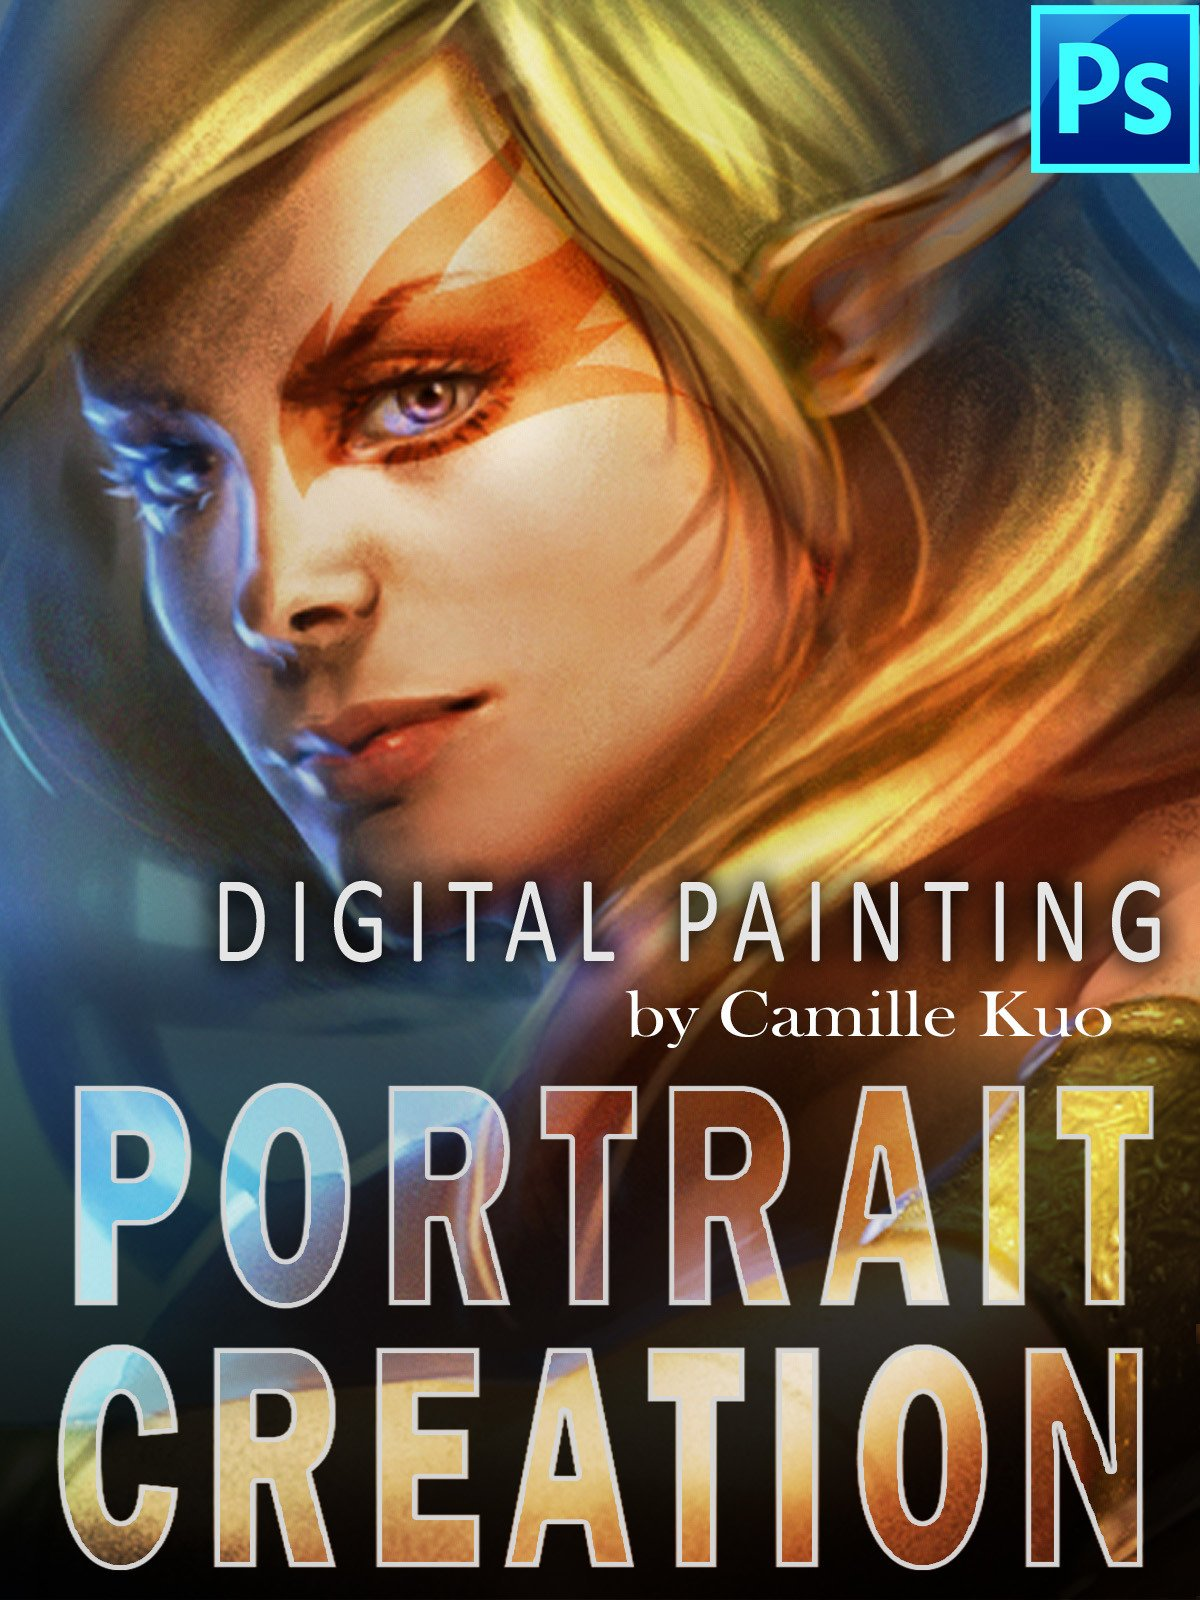 Digital Painting by Camille Kuo: Portrait Creation on Amazon Prime Video UK